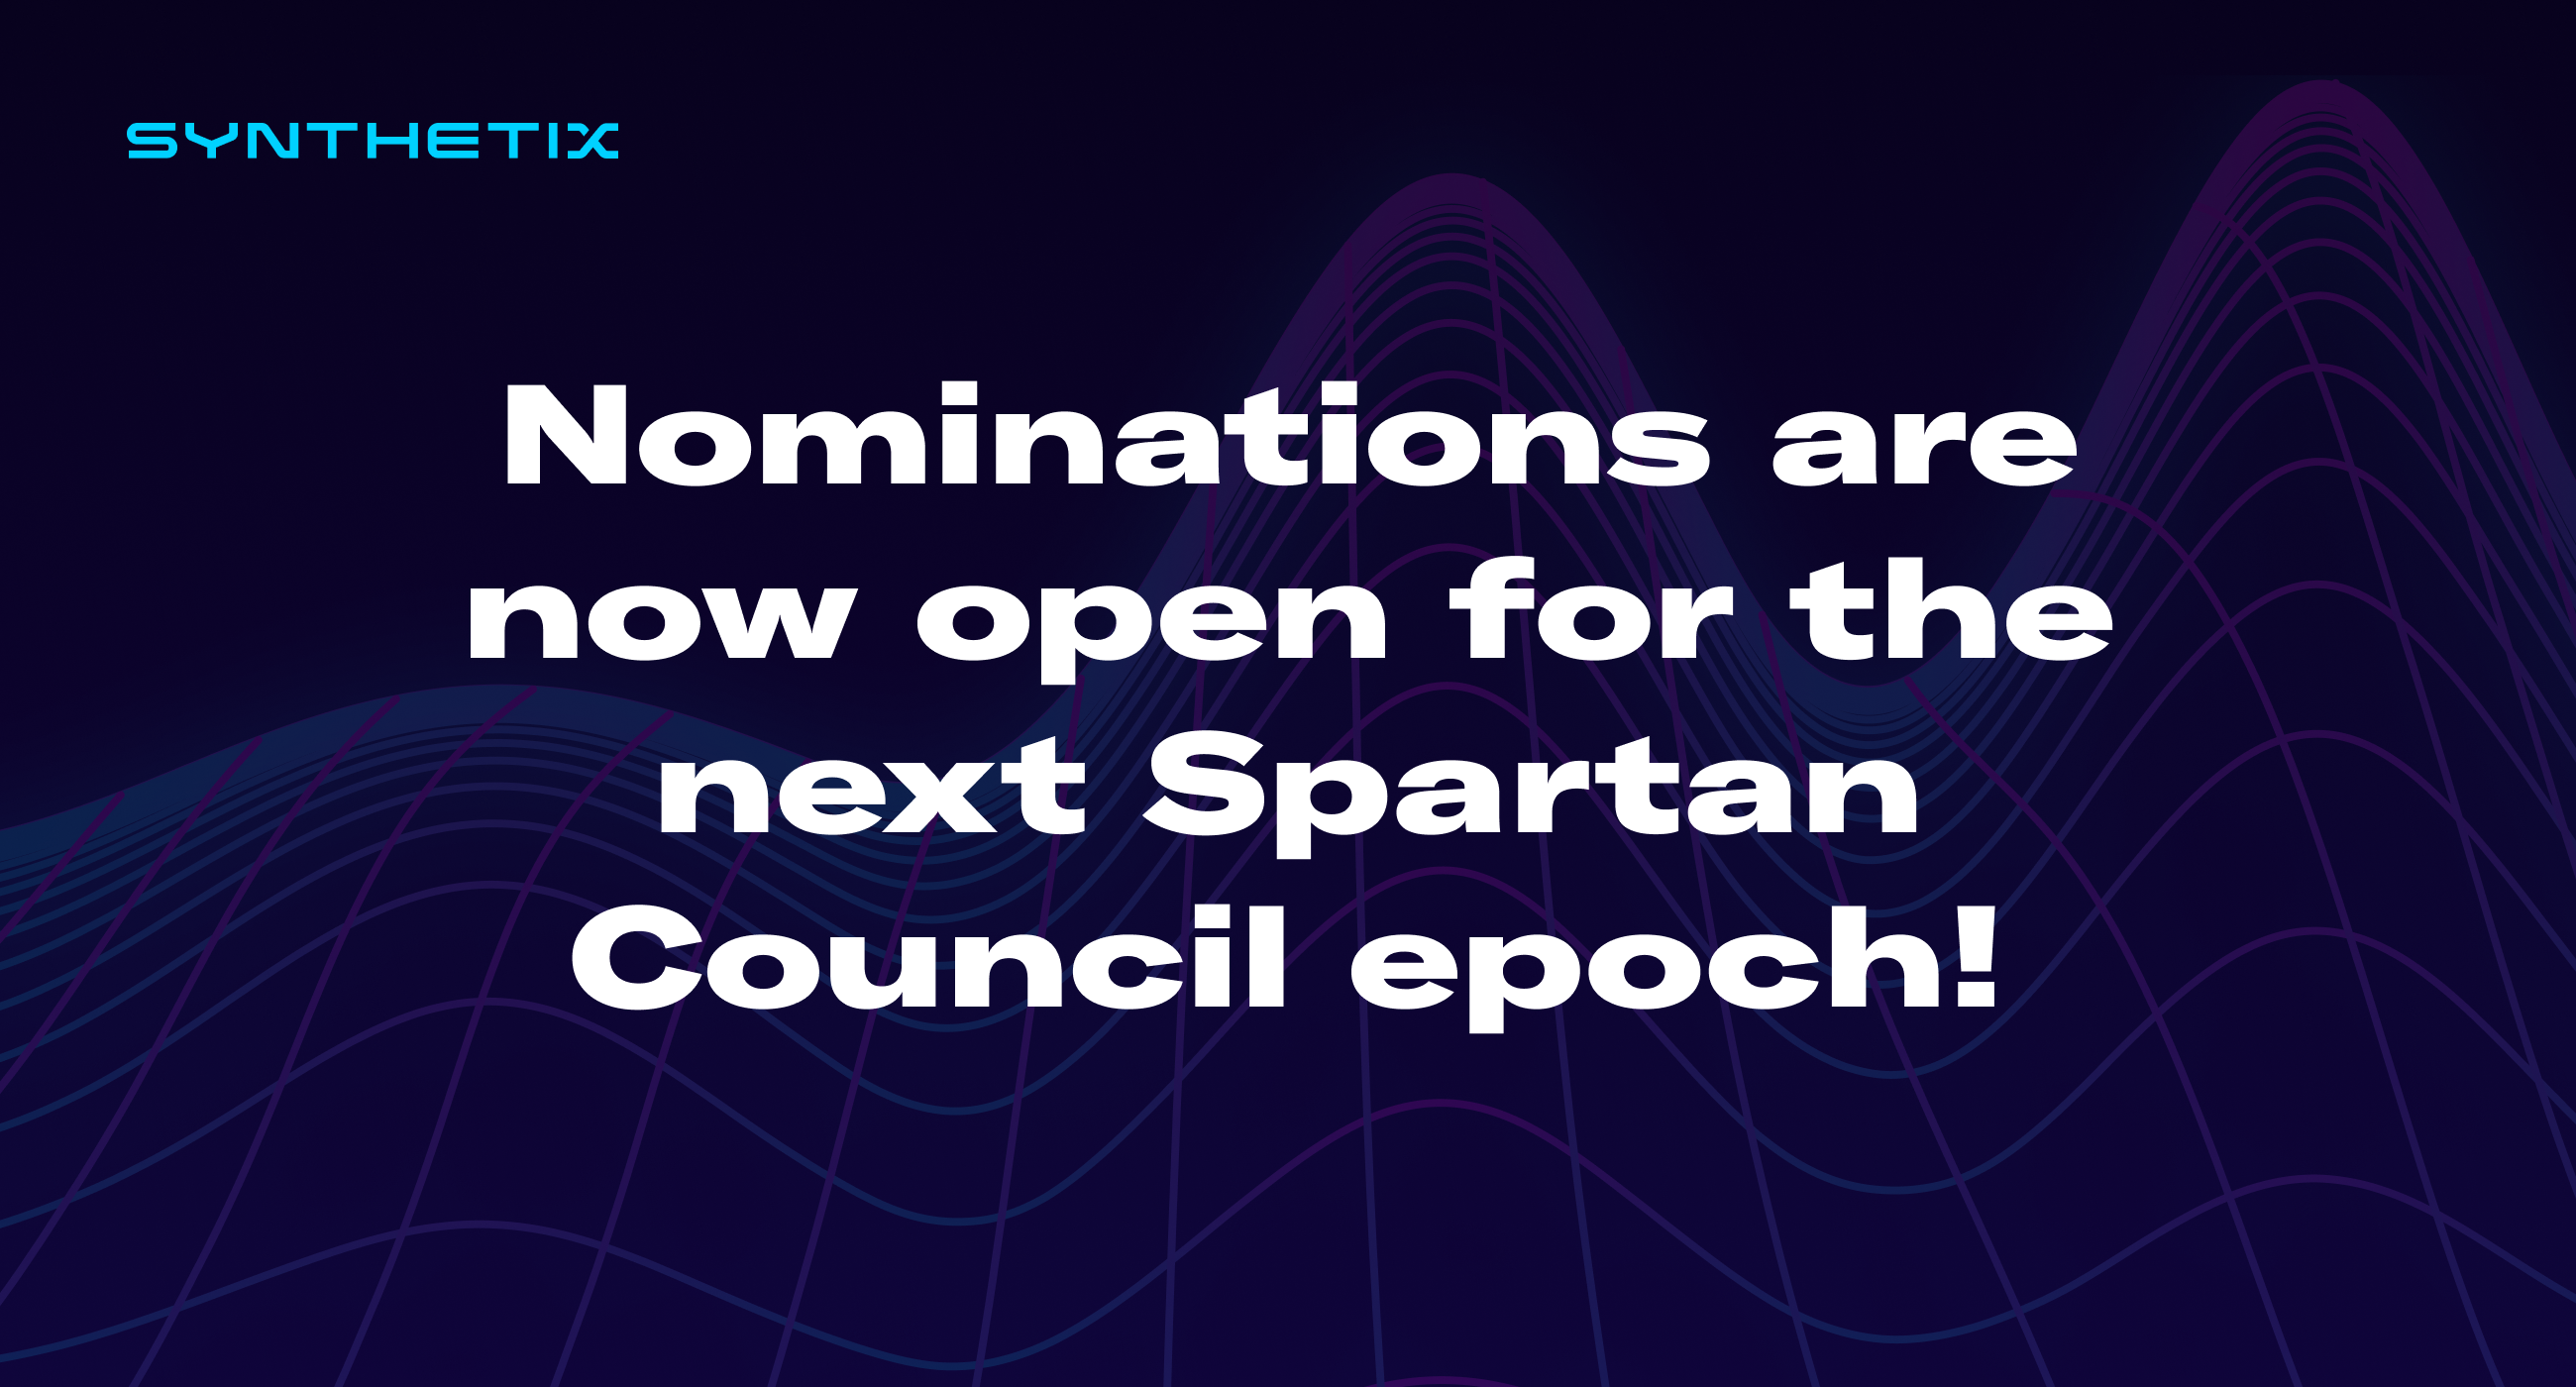 Nominations are now open for the next epoch's Spartan Council!